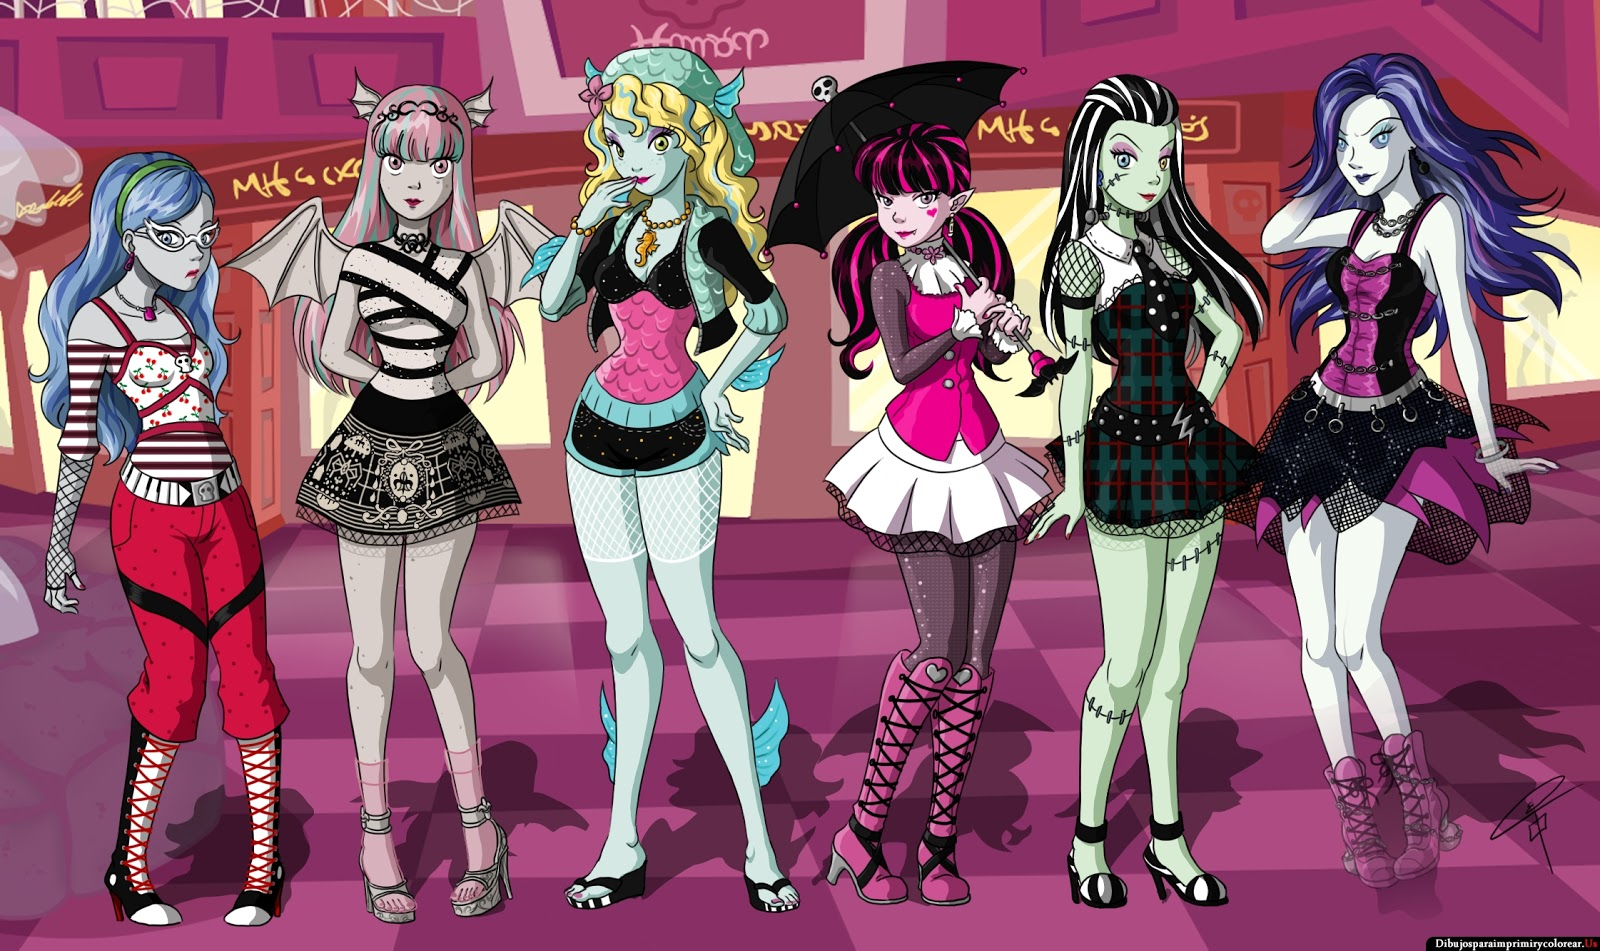 Fondos De Pantalla De Monster High: Wallpapers En HD De Las Monster High